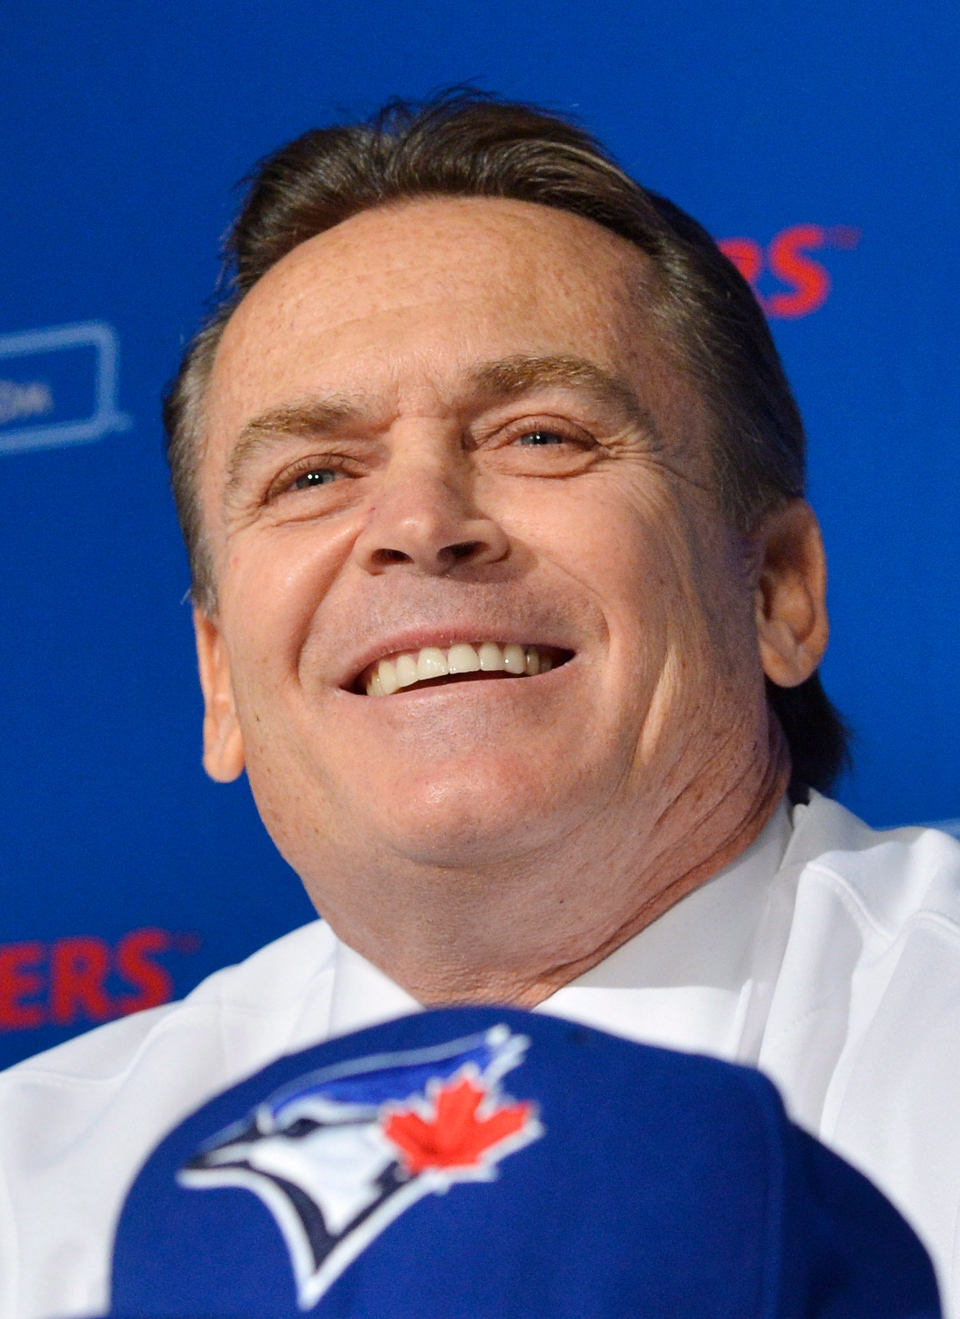 Toronto Blue Jays new manager John Gibbons speaks to he media during a press conference in Toronto on Tuesday, Nov. 20, 2012. (Nathan Denette / THE CANADIAN PRESS)